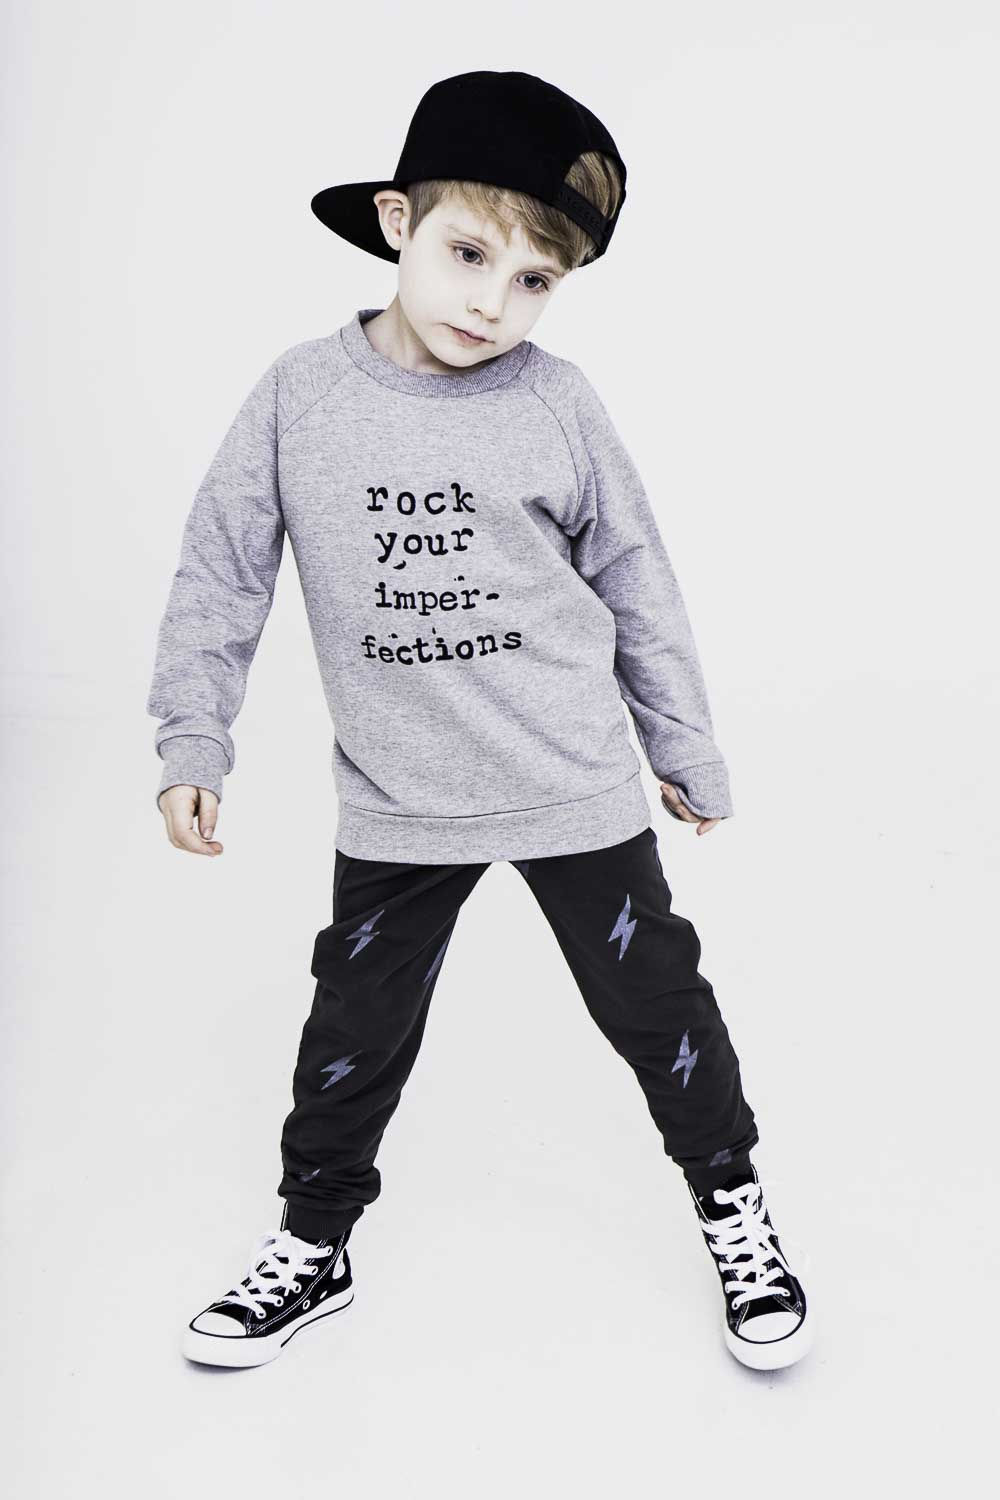 iglo-indi-winter-2017-2018-kidsfashion-trends-aw-kindermode-13